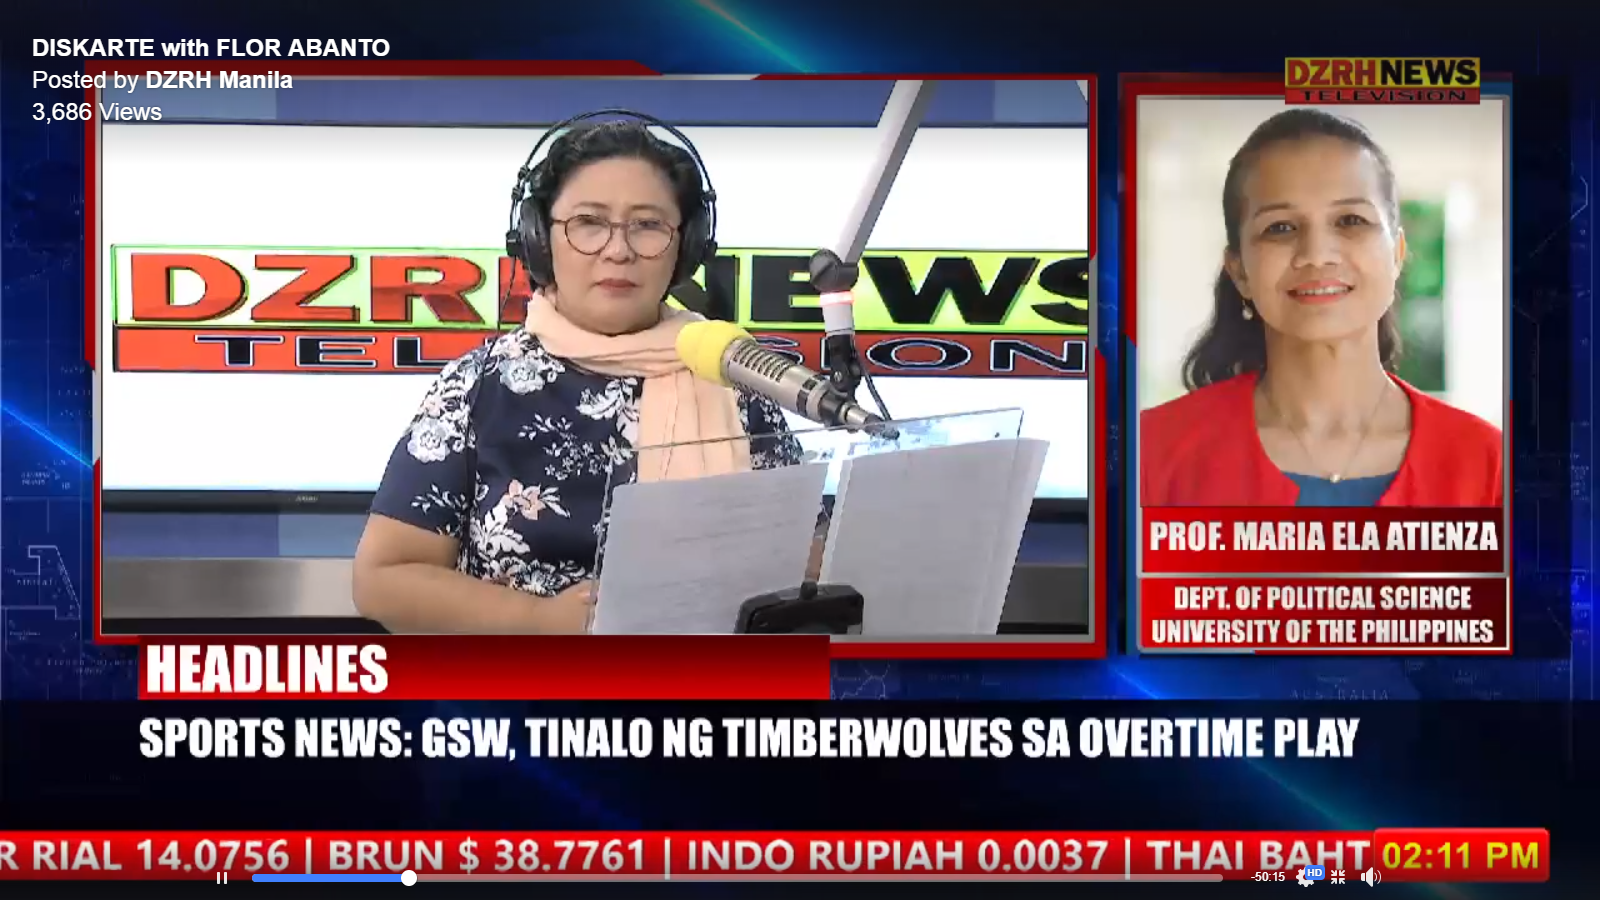 Political parties, elections, and voting behavior on DZRH News' Diskarte